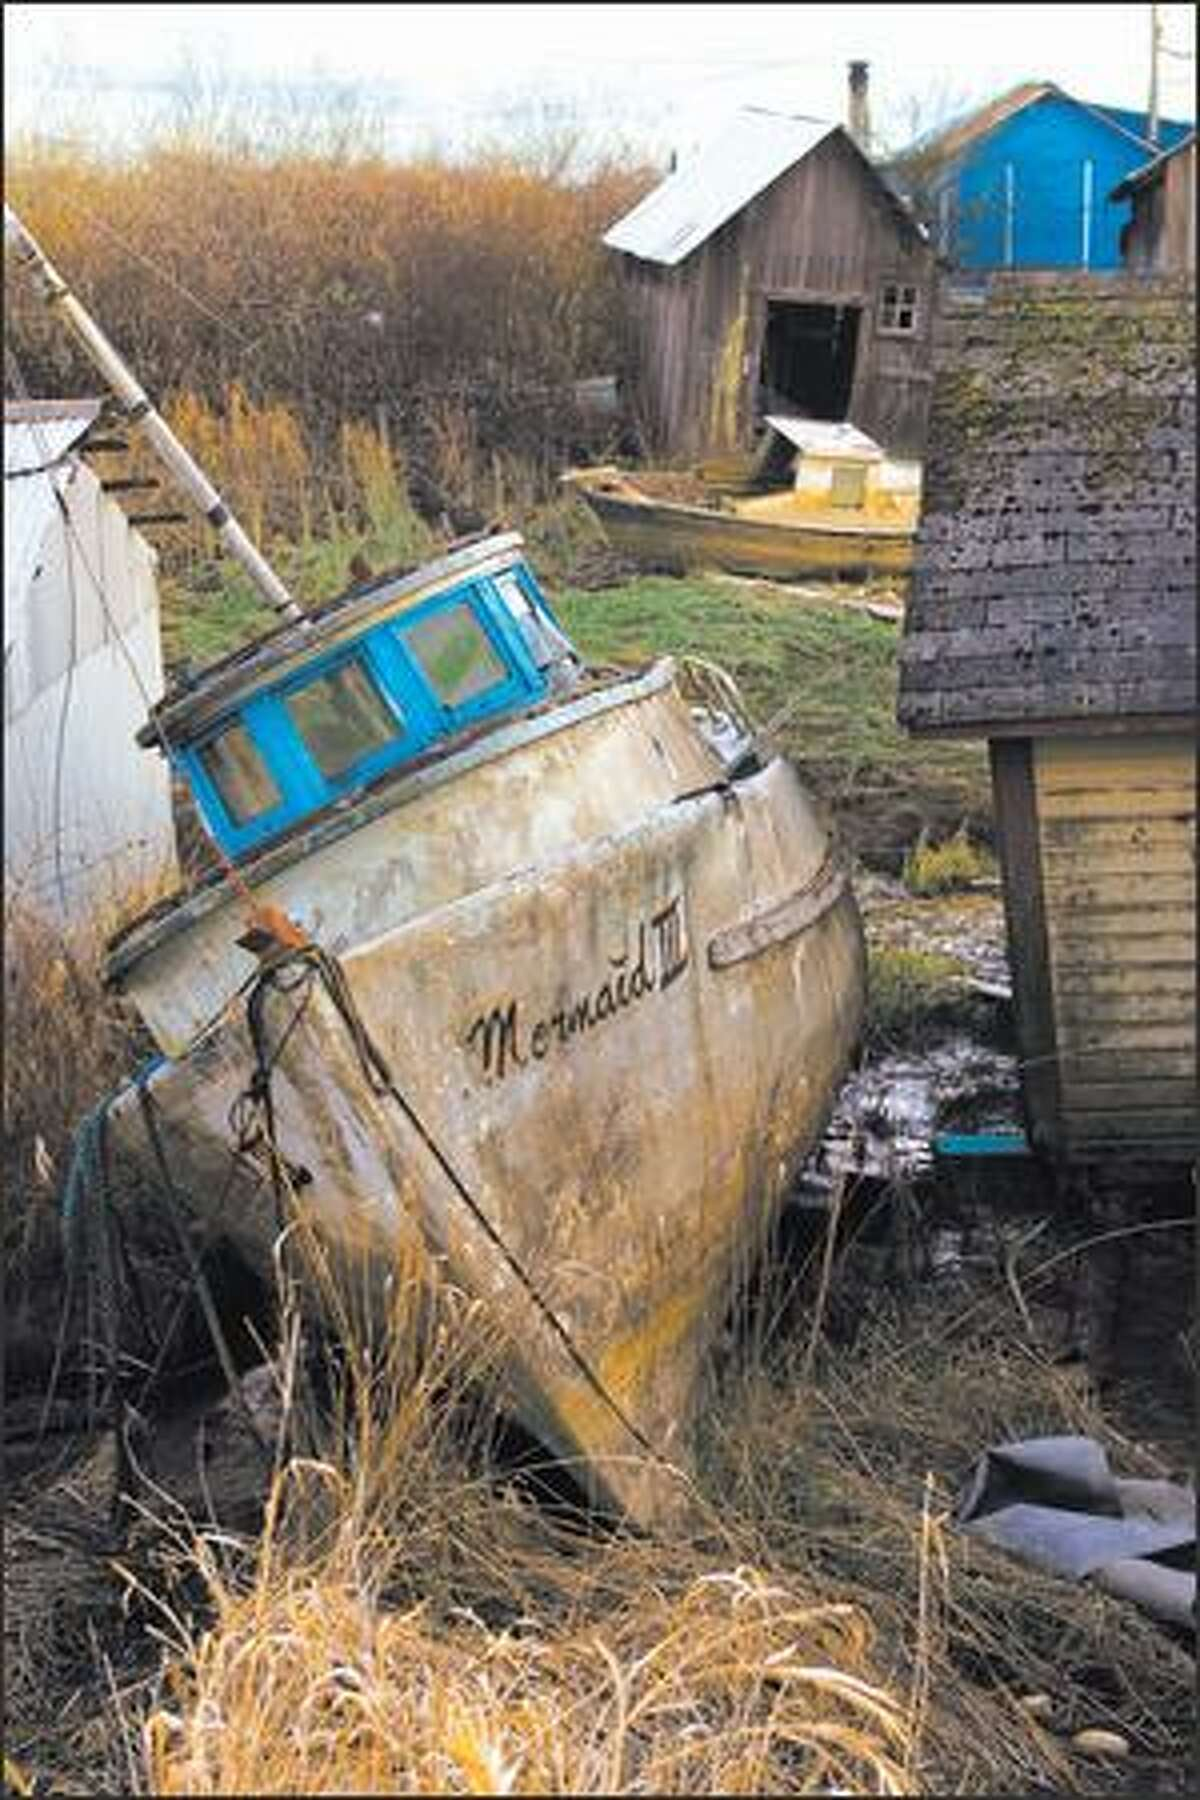 A derelict fishing boat is a timeless reminder of Steveston's maritime heritage.